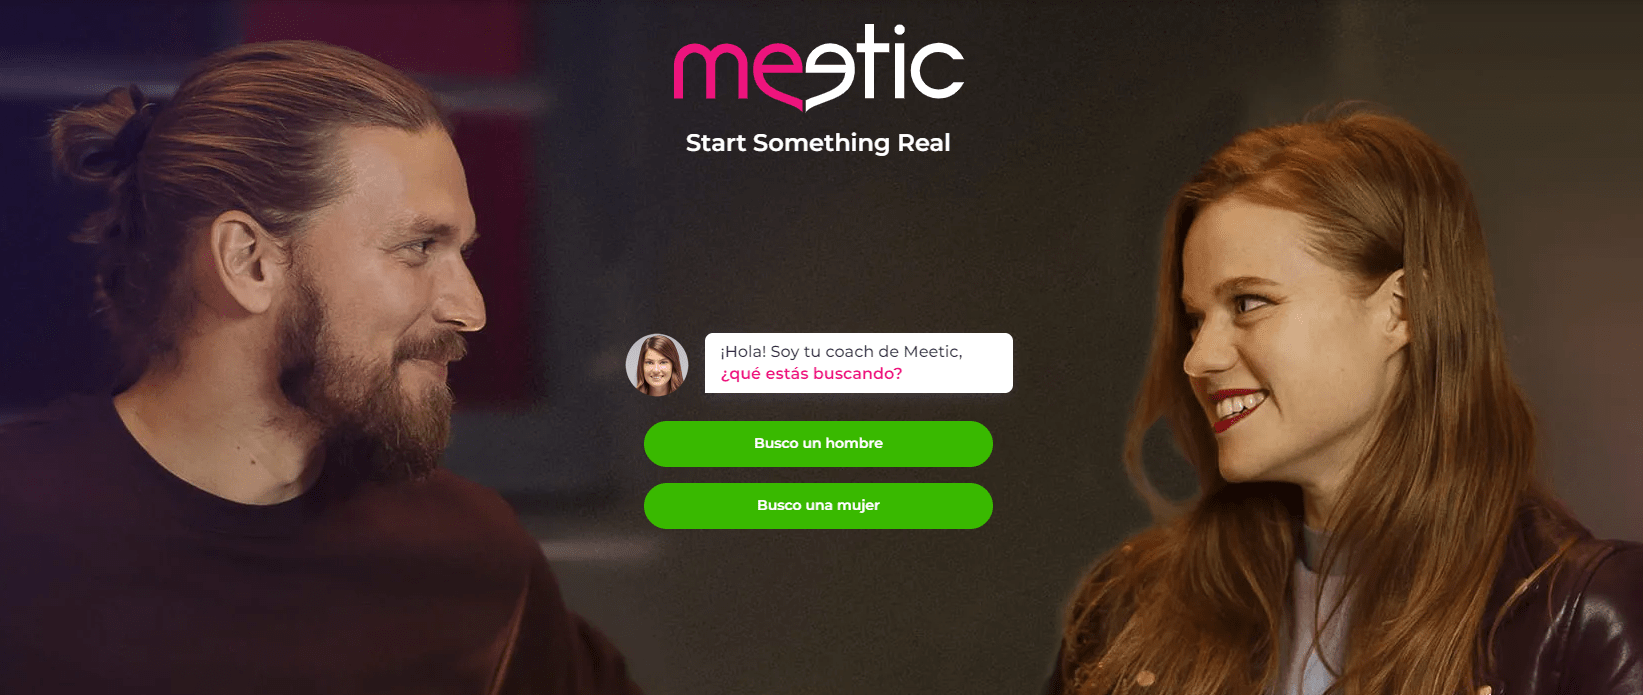 meetic-front-page